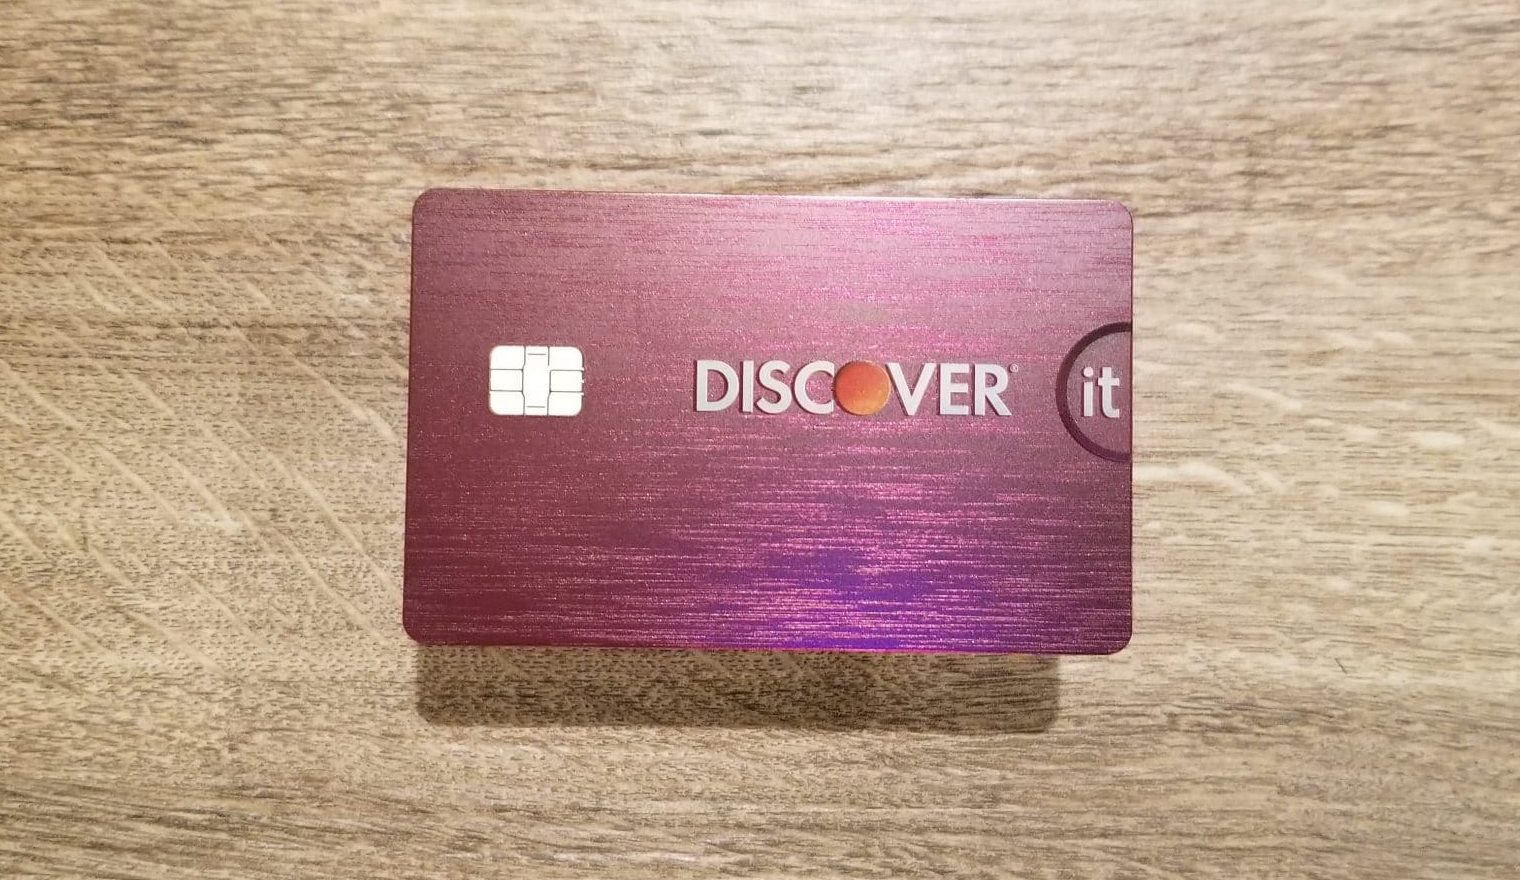 Get $8 Amazon Credit When You Add Discover Card (YMMV) - Danny